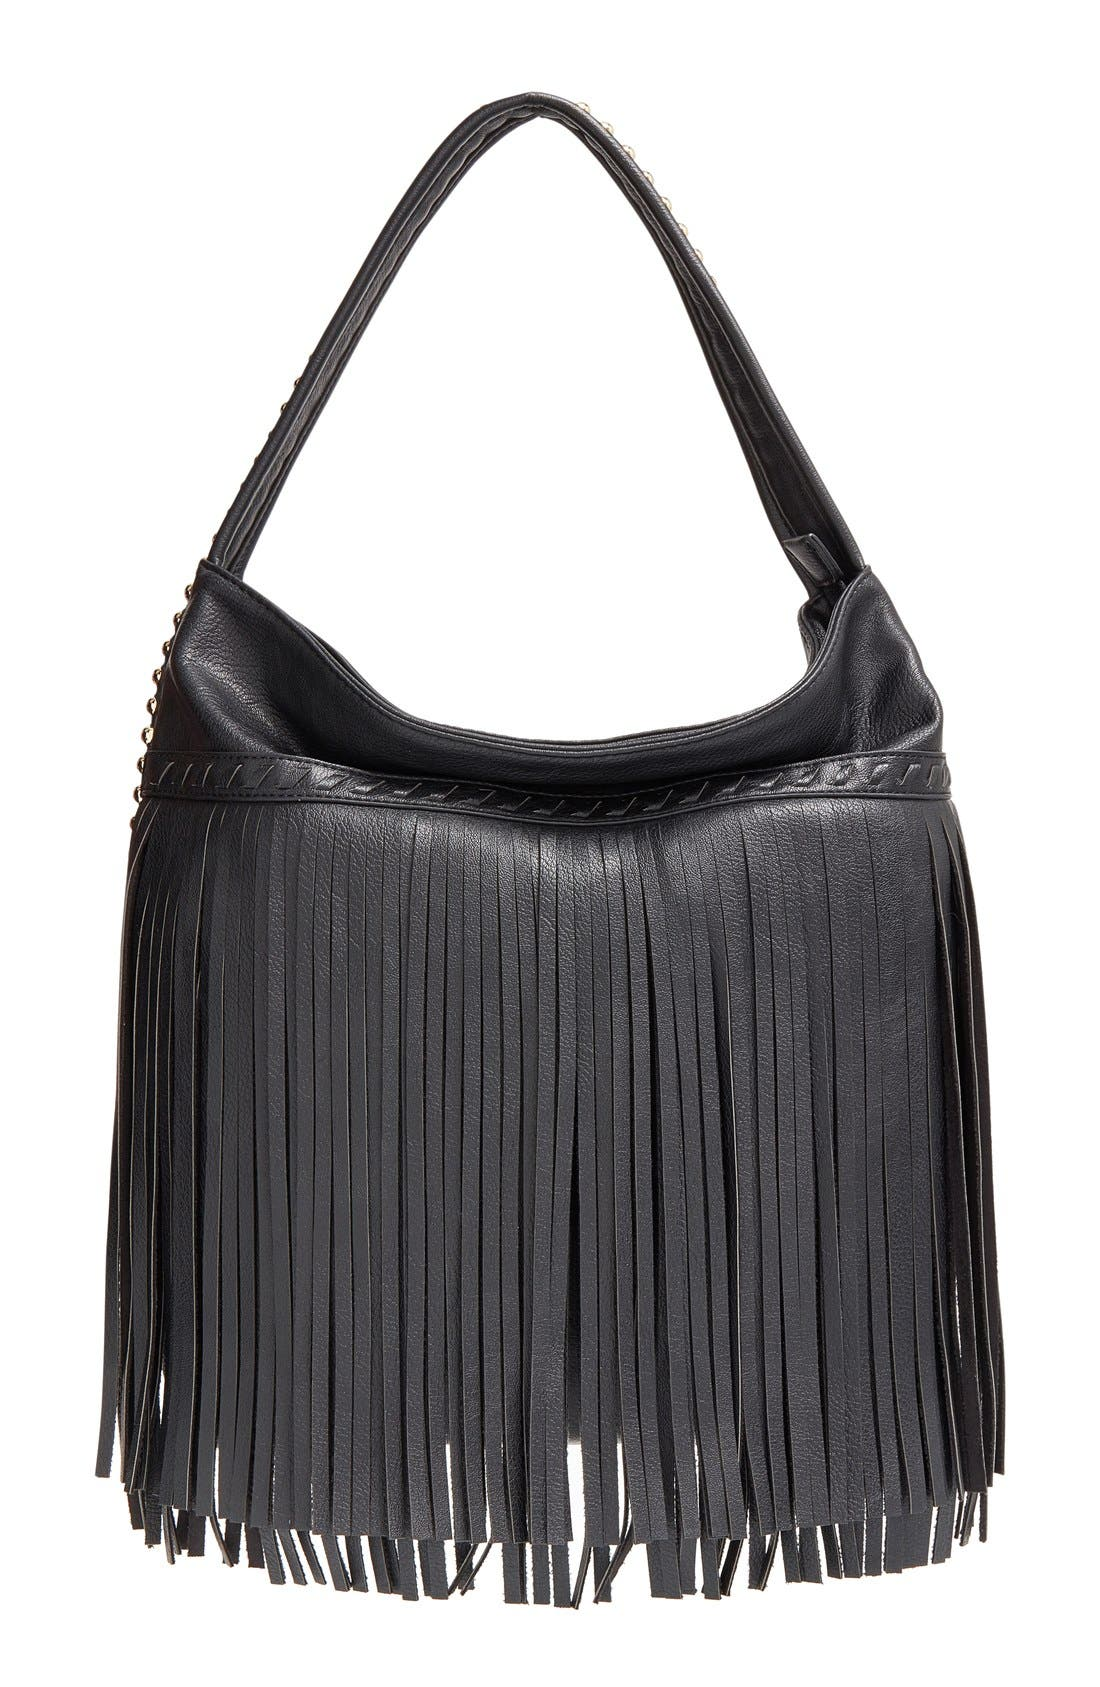 Alternate Image 1 Selected - Big Buddha 'JGiada' Fringe Faux Leather Ball Hobo